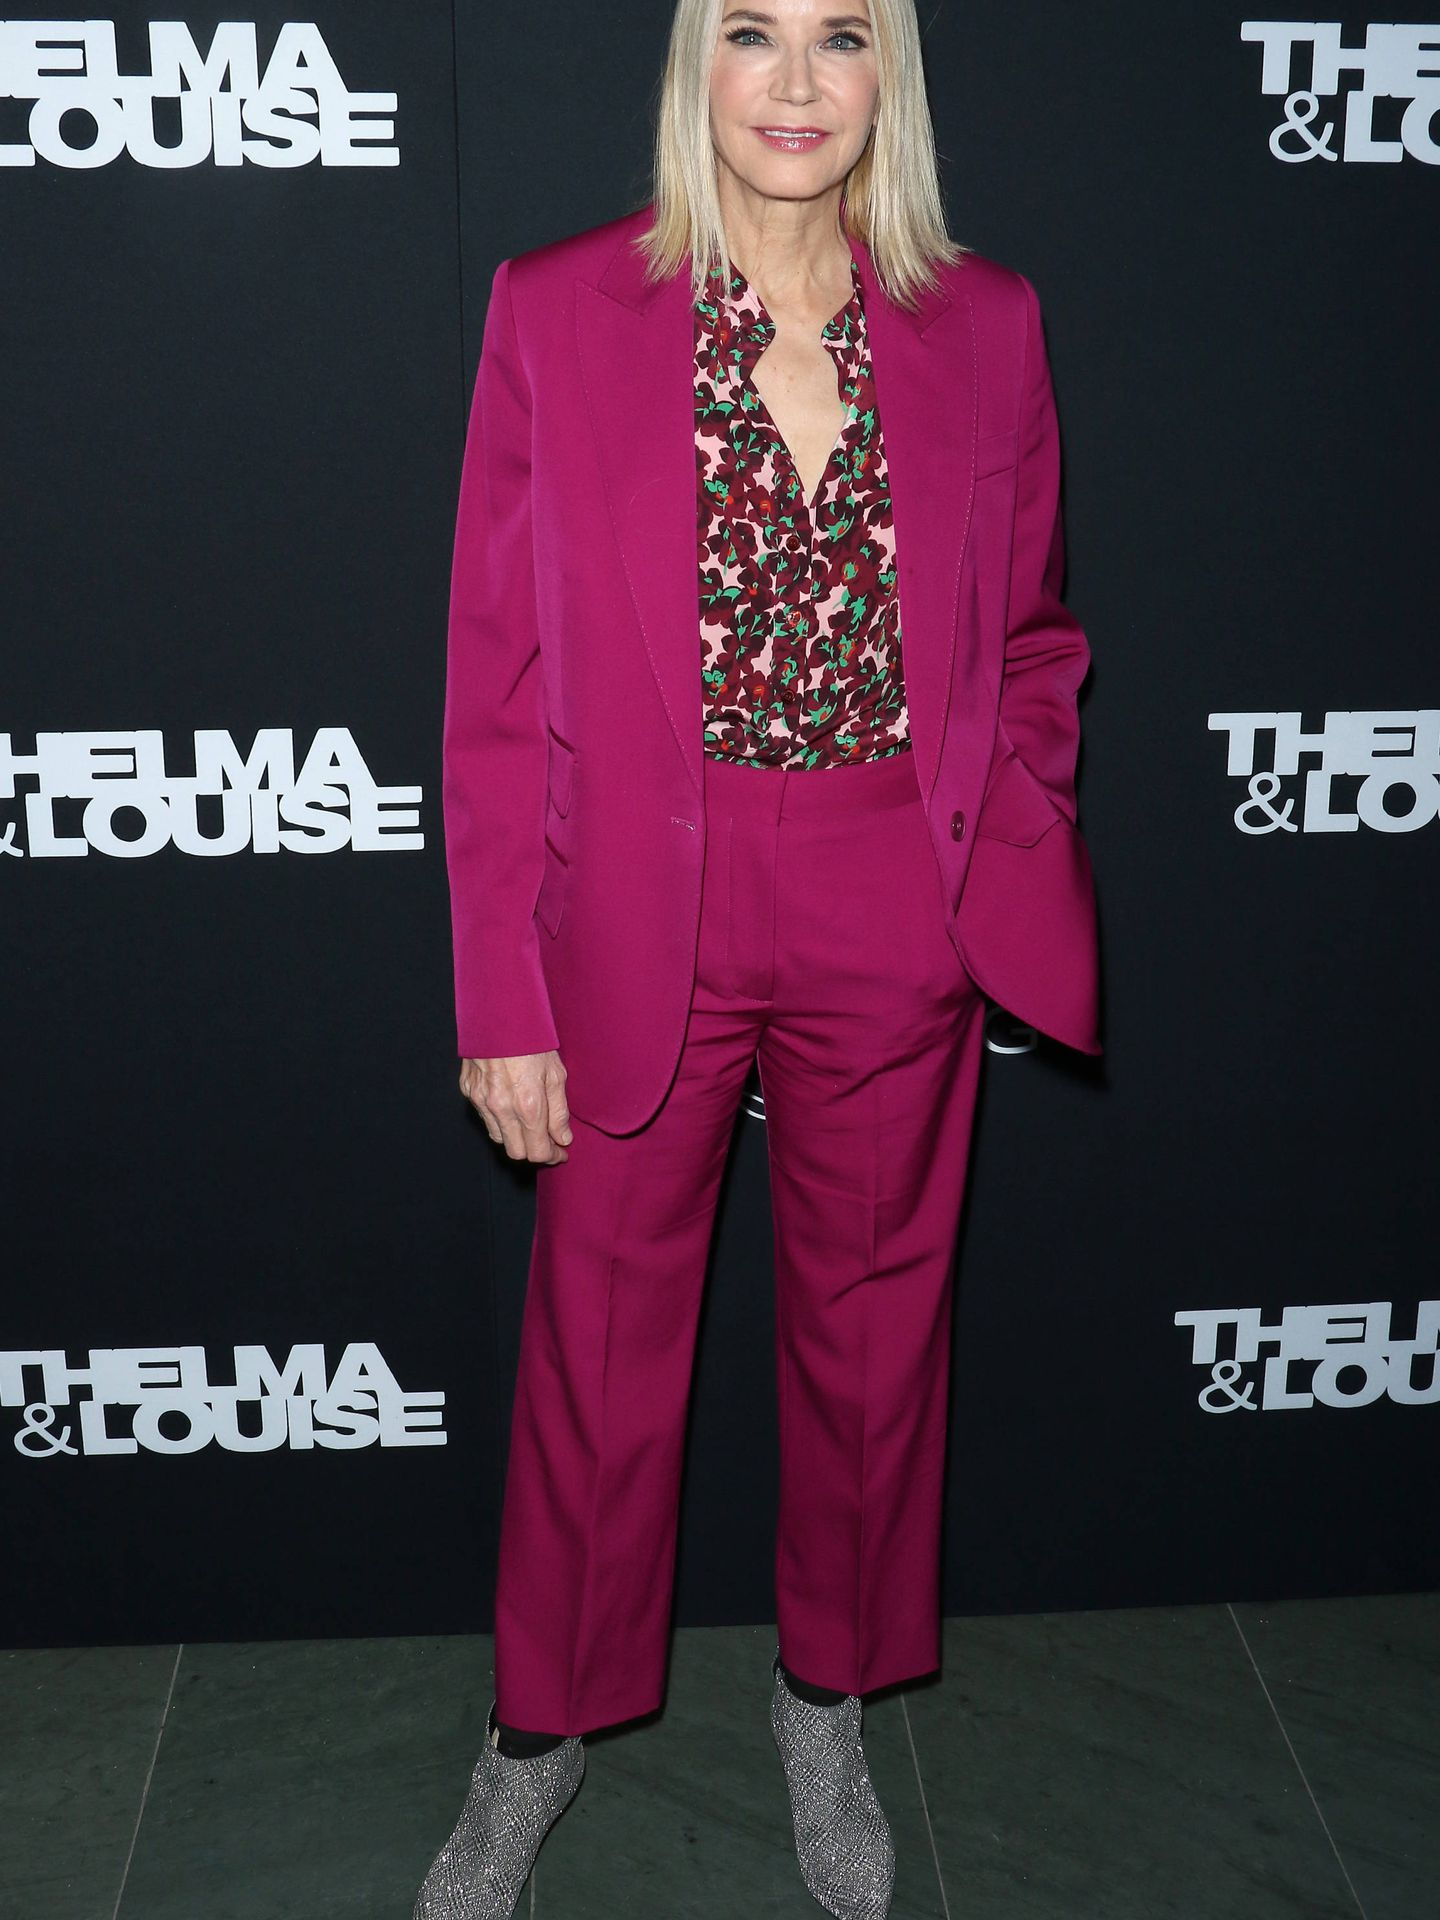 Candace Bushnell. (Getty)